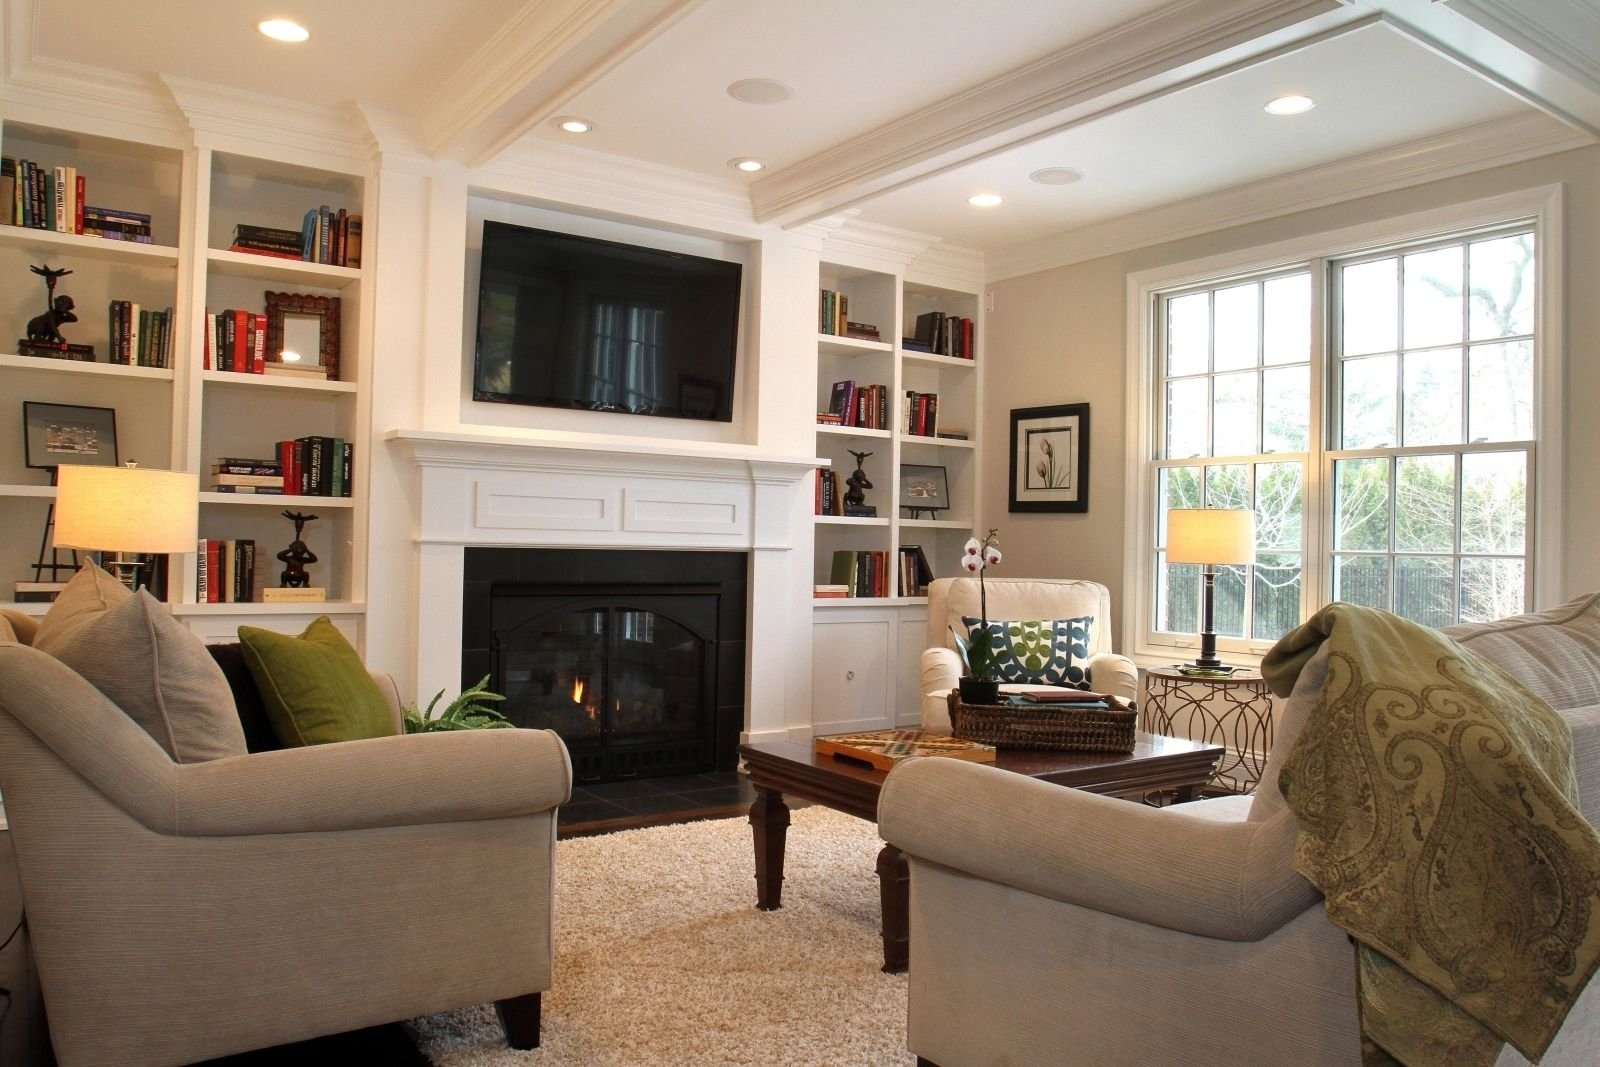 10 Lovable Decorating Ideas For Family Room family room decorating ideas on a budget internetunblock 2021